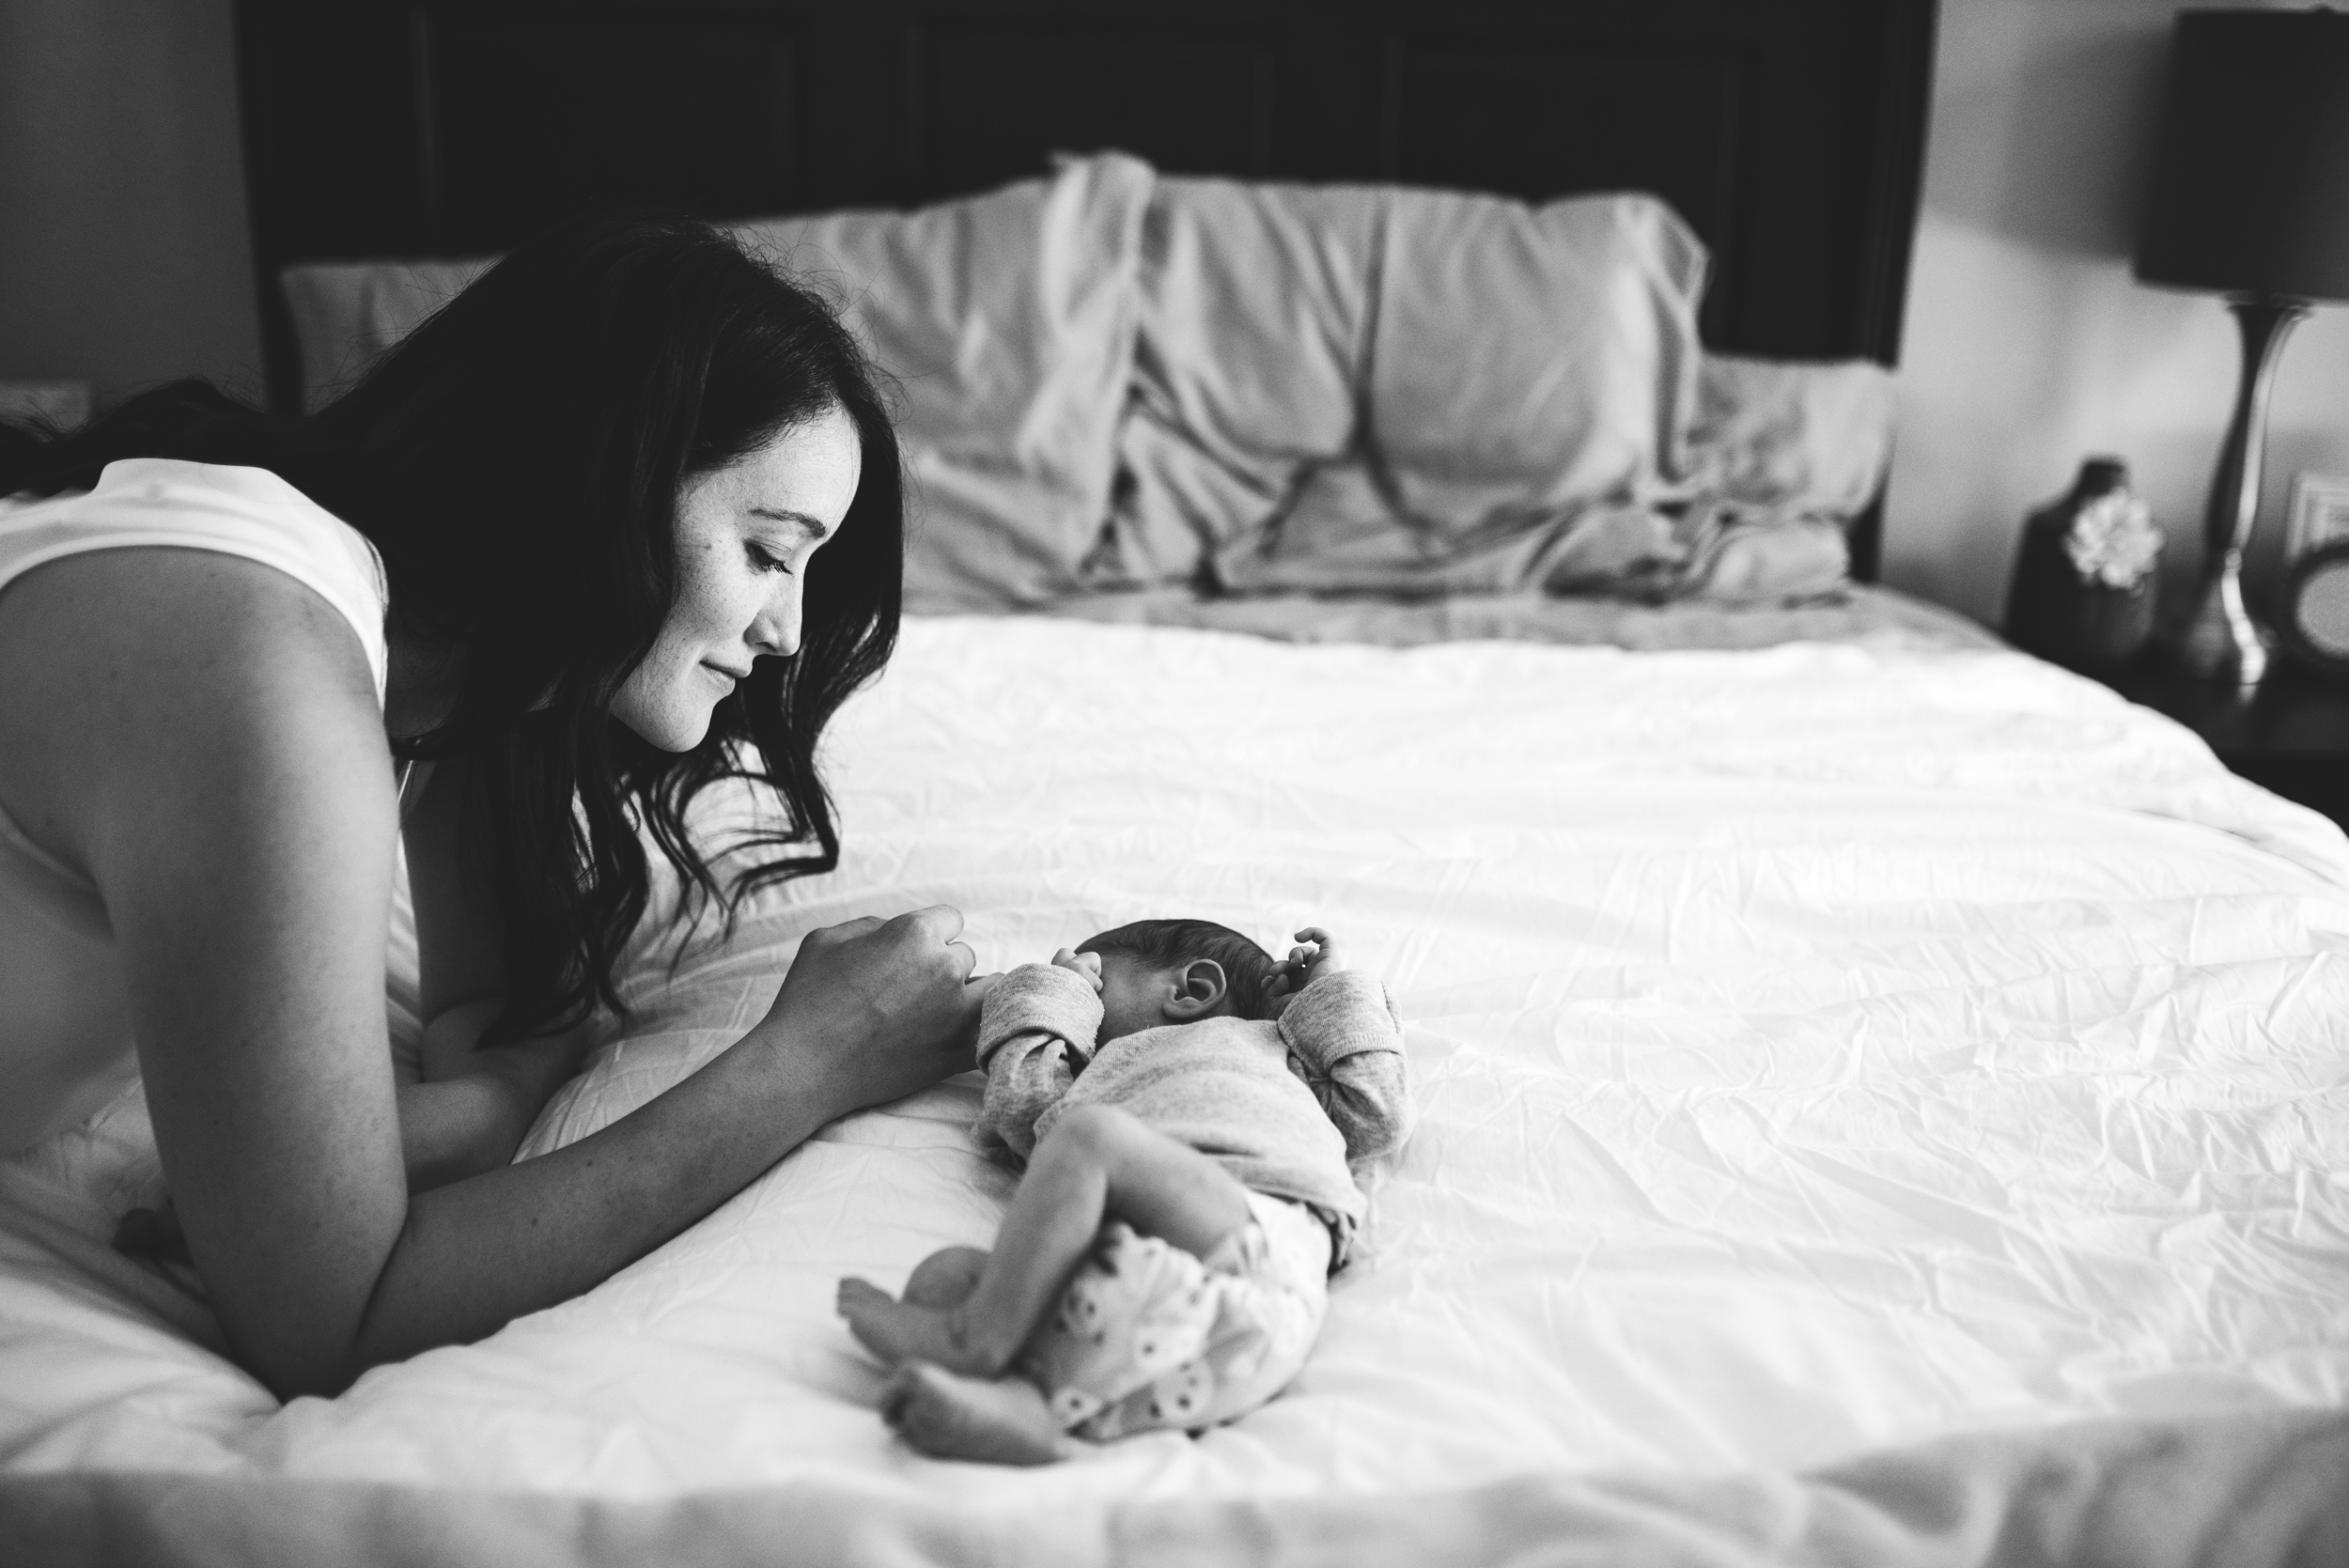 Everett newborn photographer baby is on bed while mom looks on